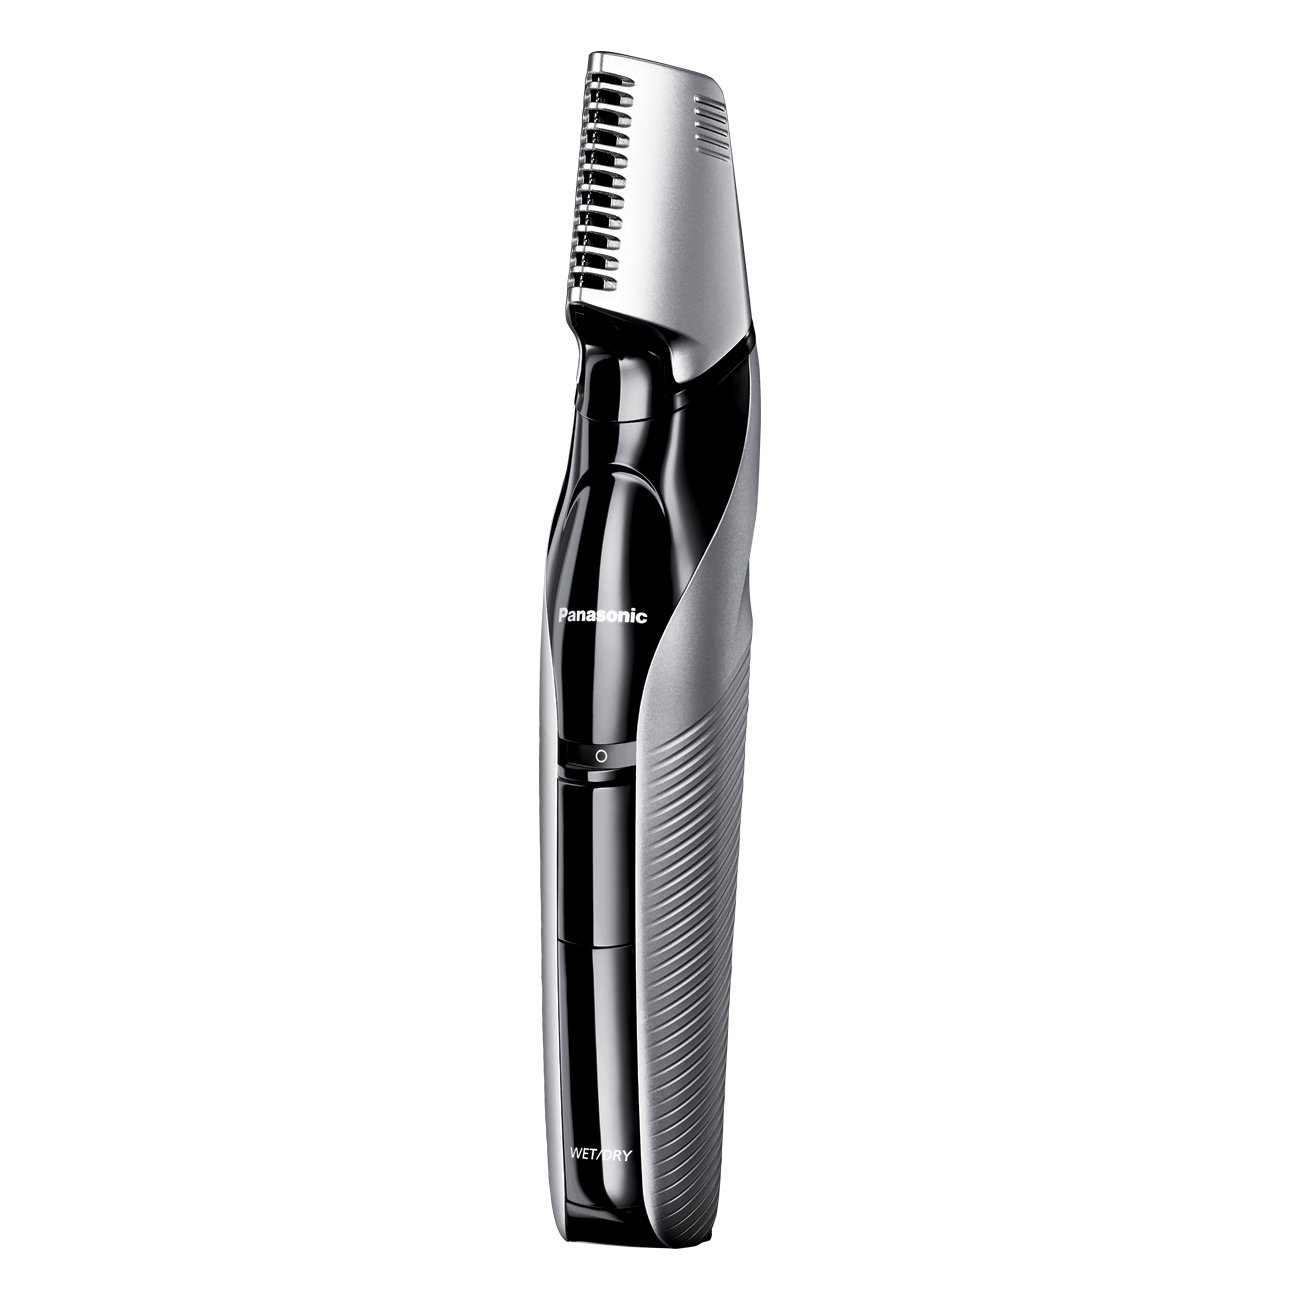 Panasonic Cordless Electric Body Hair Trimmer with Waterproof Design, ER-GK60-S by Panasonic (Image #11)